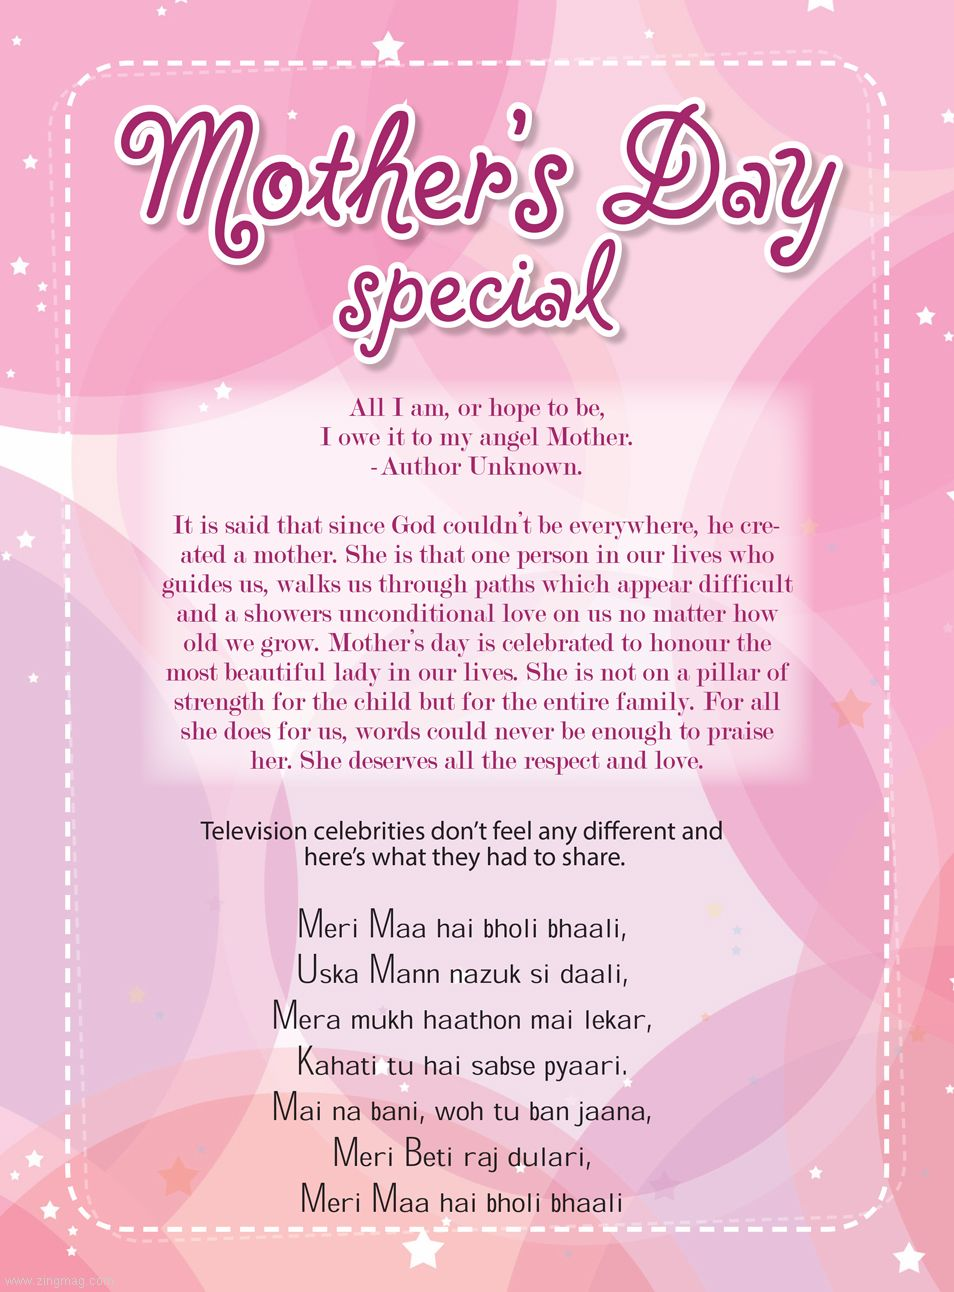 Happy Mothers Day Wallpapers Images and Greetings